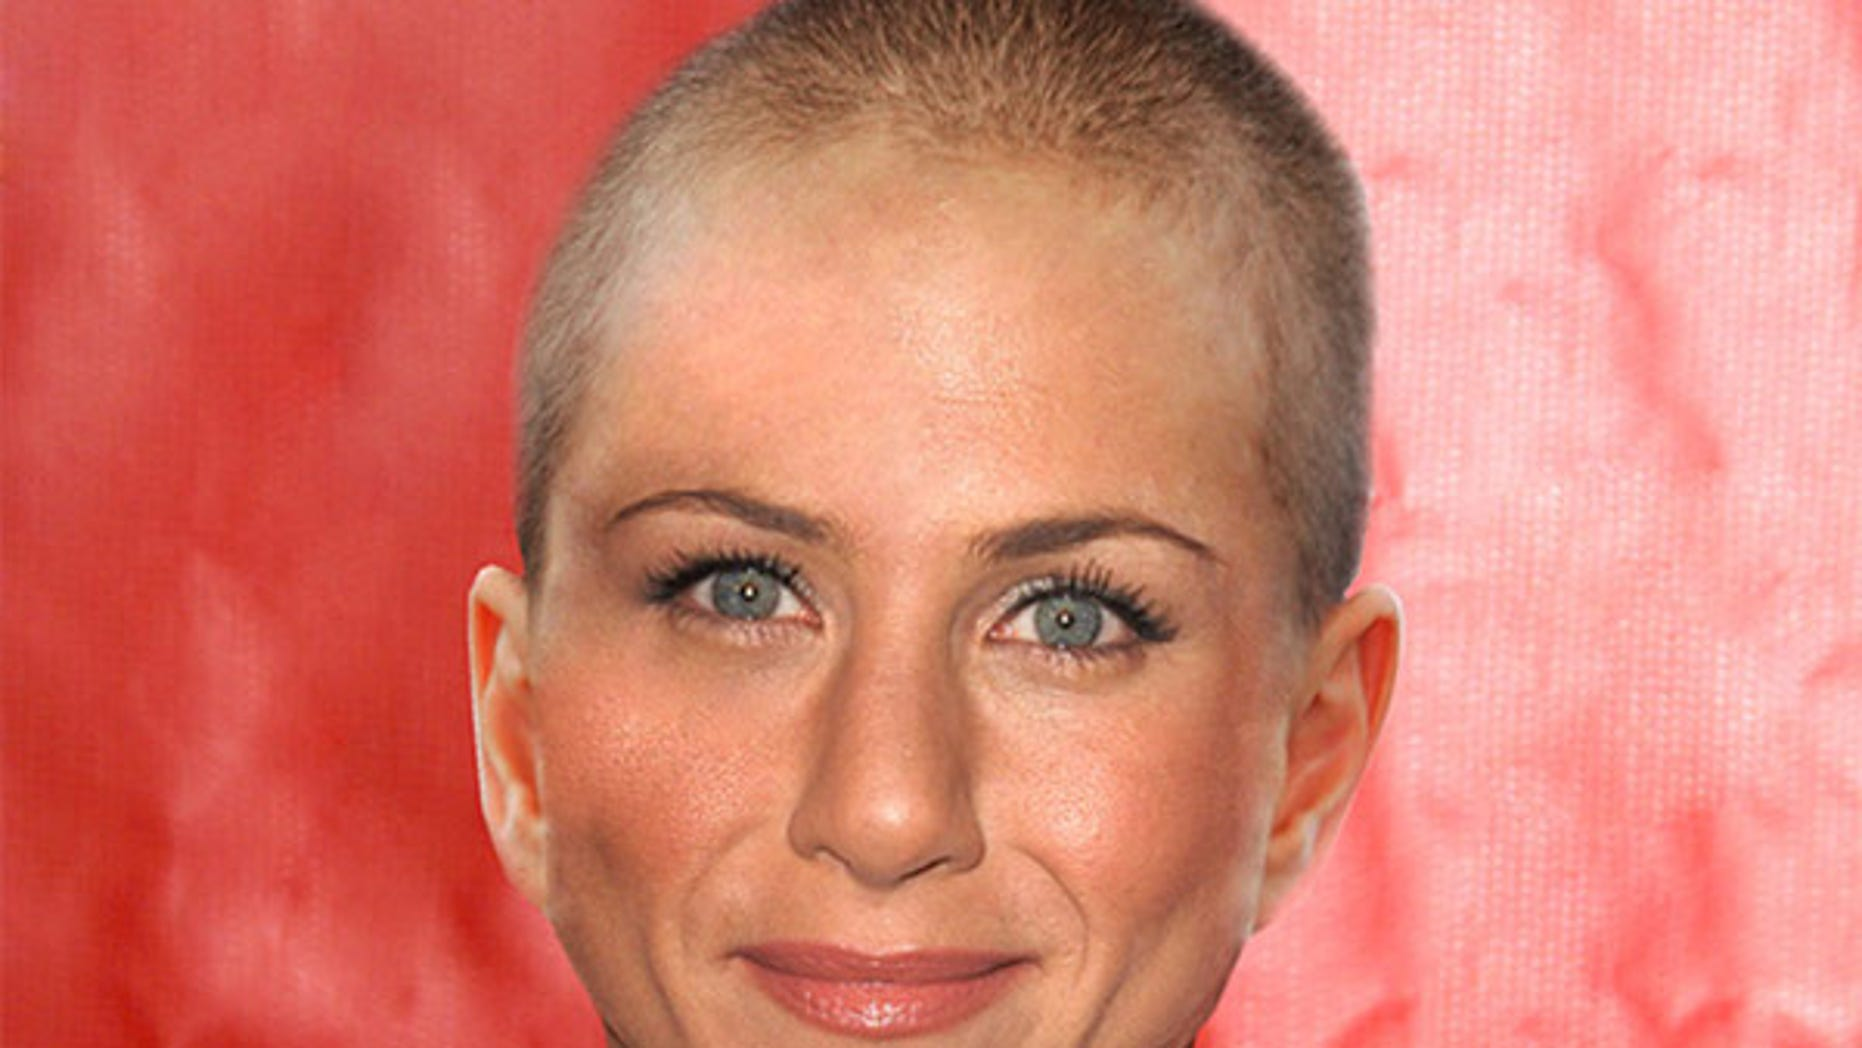 This fake photo of Jennifer Aniston led fans to believe she had shaved her head.